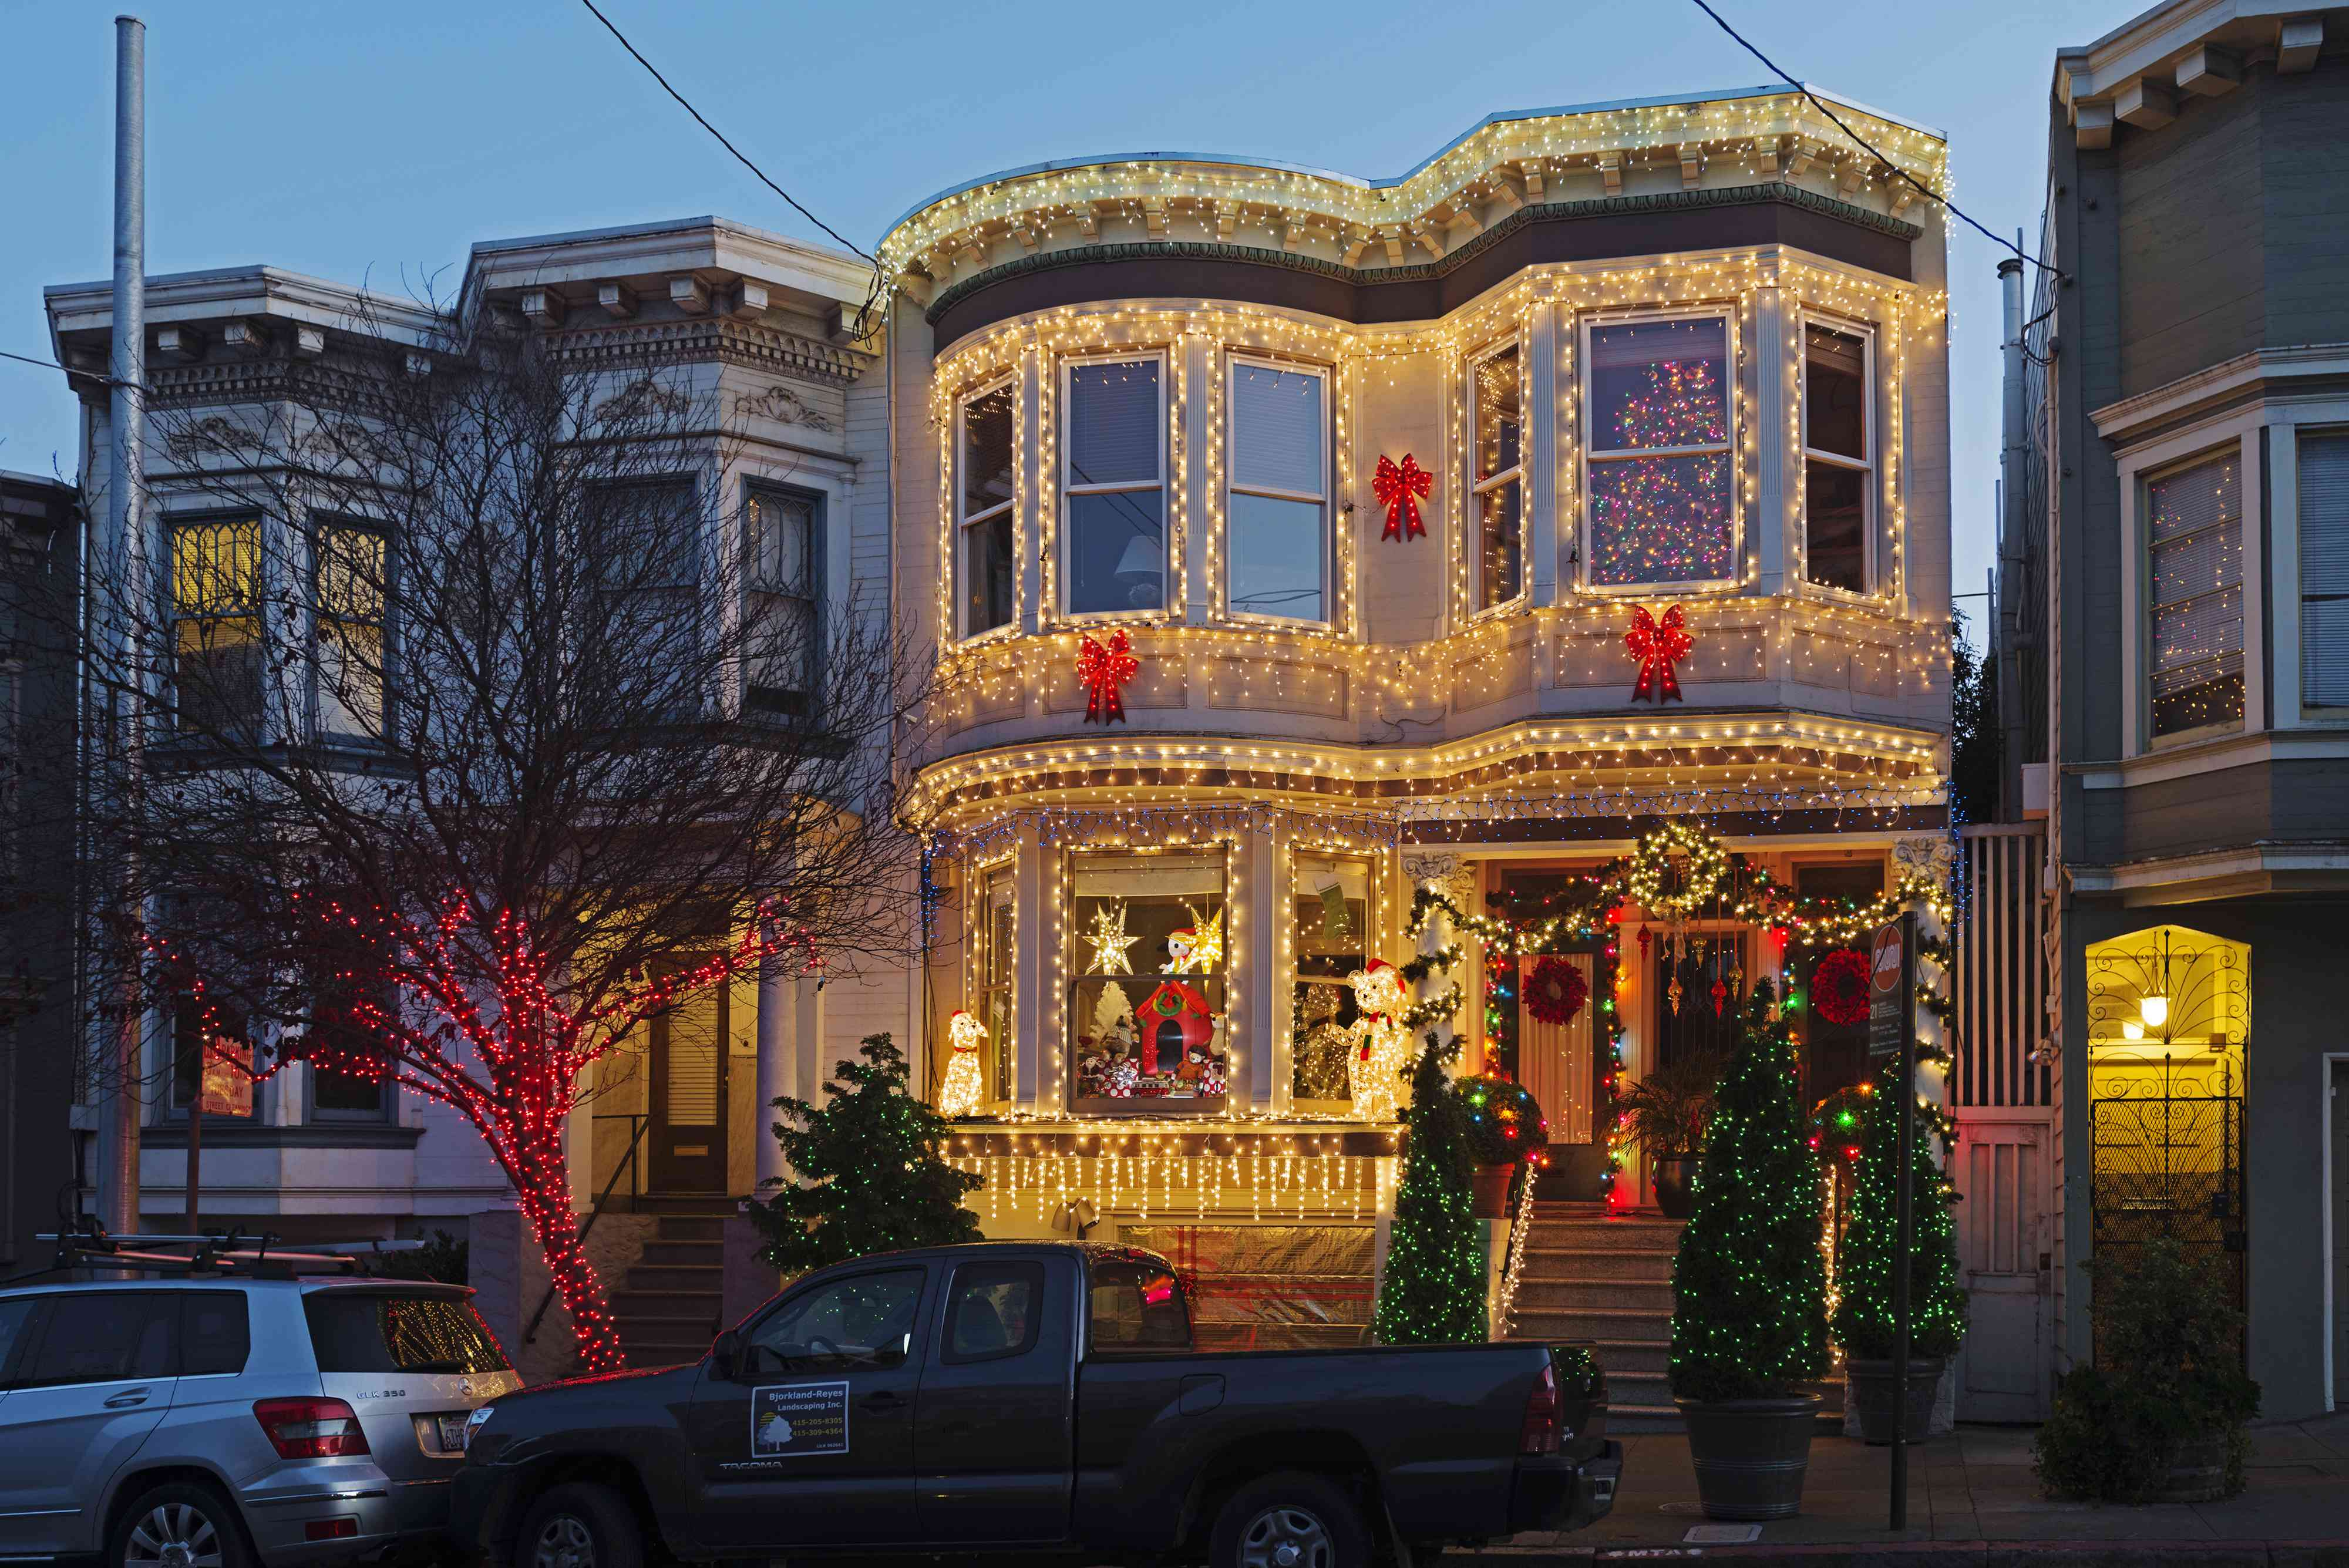 Top Things To Do In San Francisco For Christmas